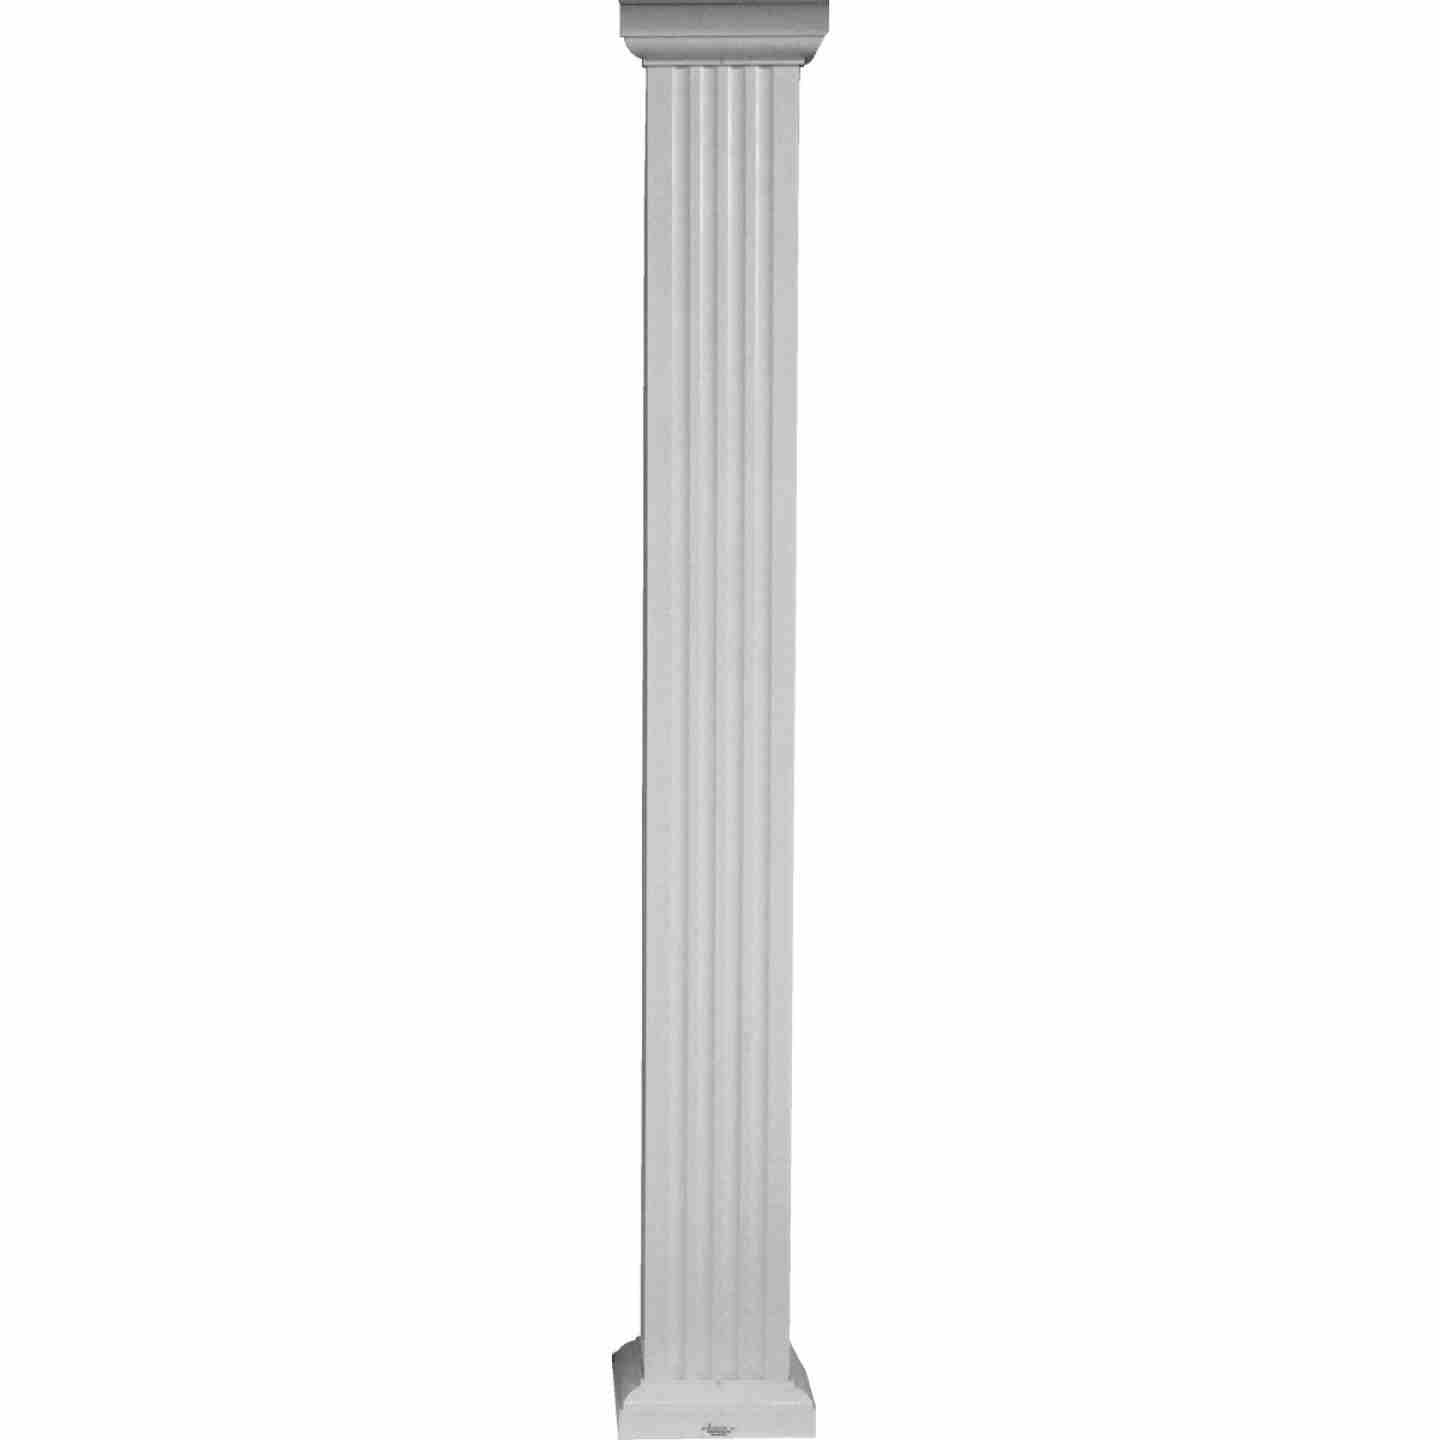 Crown Column 6 In. x 8 Ft. White Powder Coated Square Fluted Aluminum Column Image 1